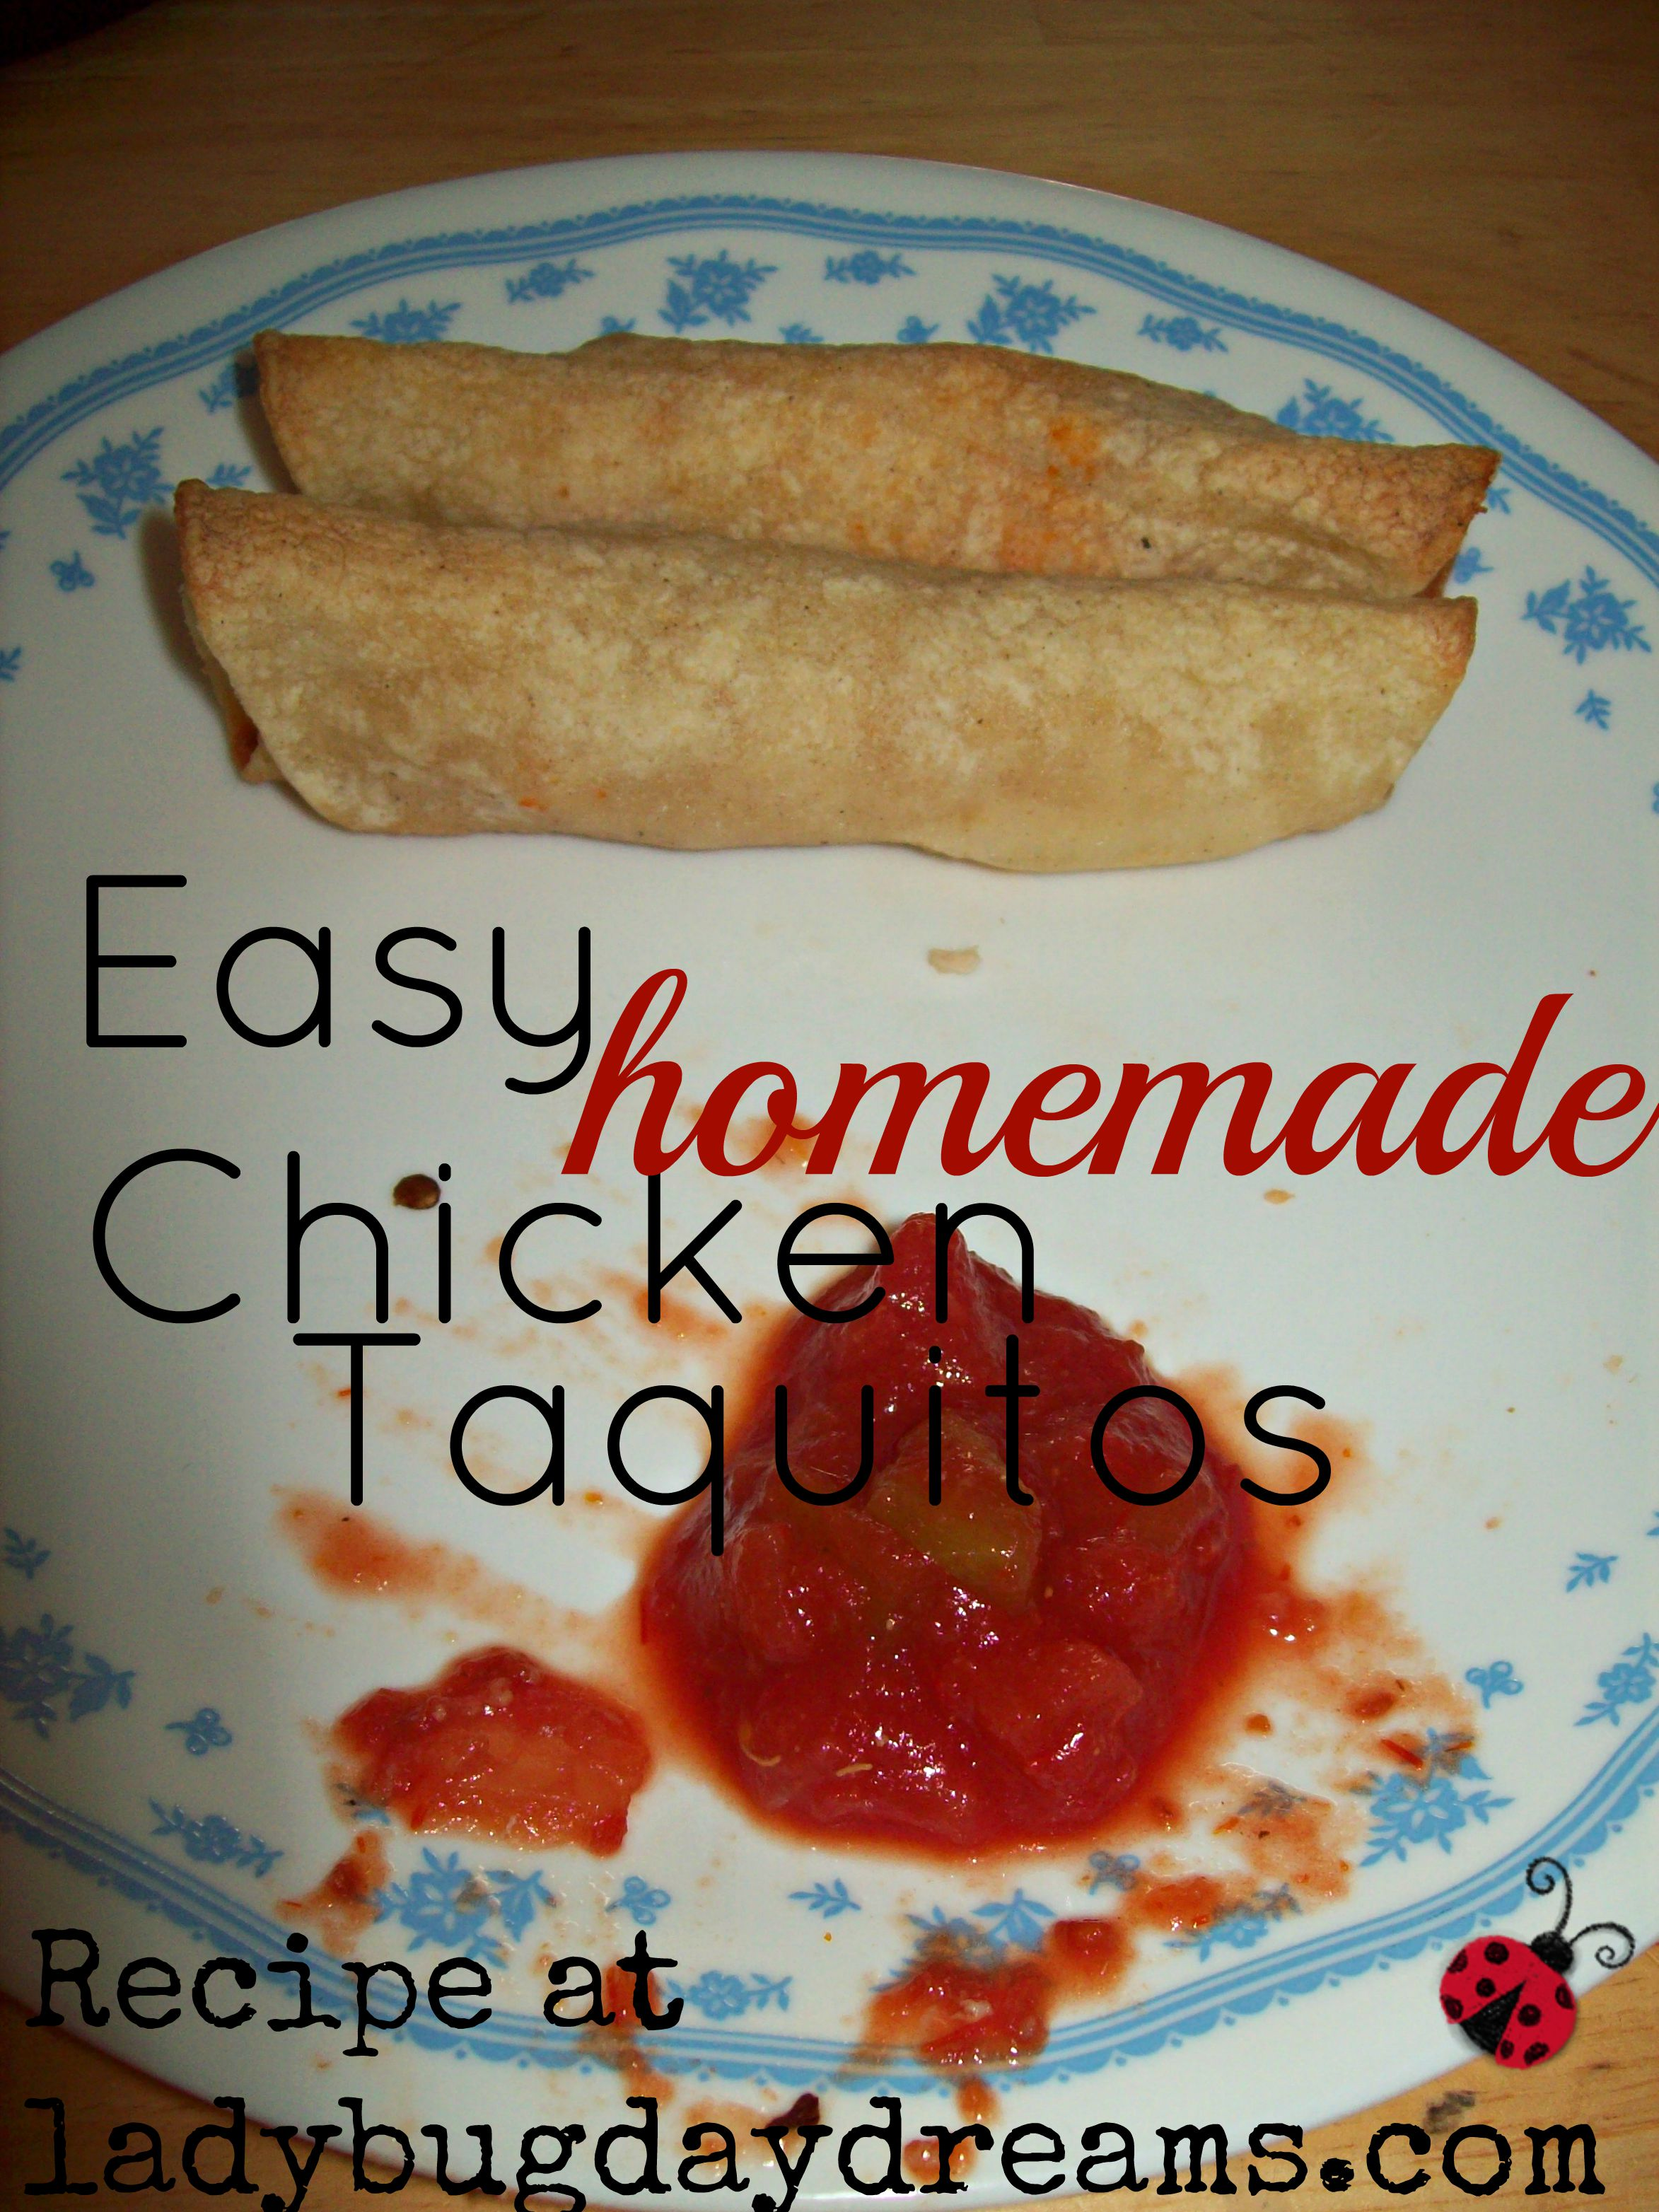 Easy Homemade Chicken Taquitos Recipe